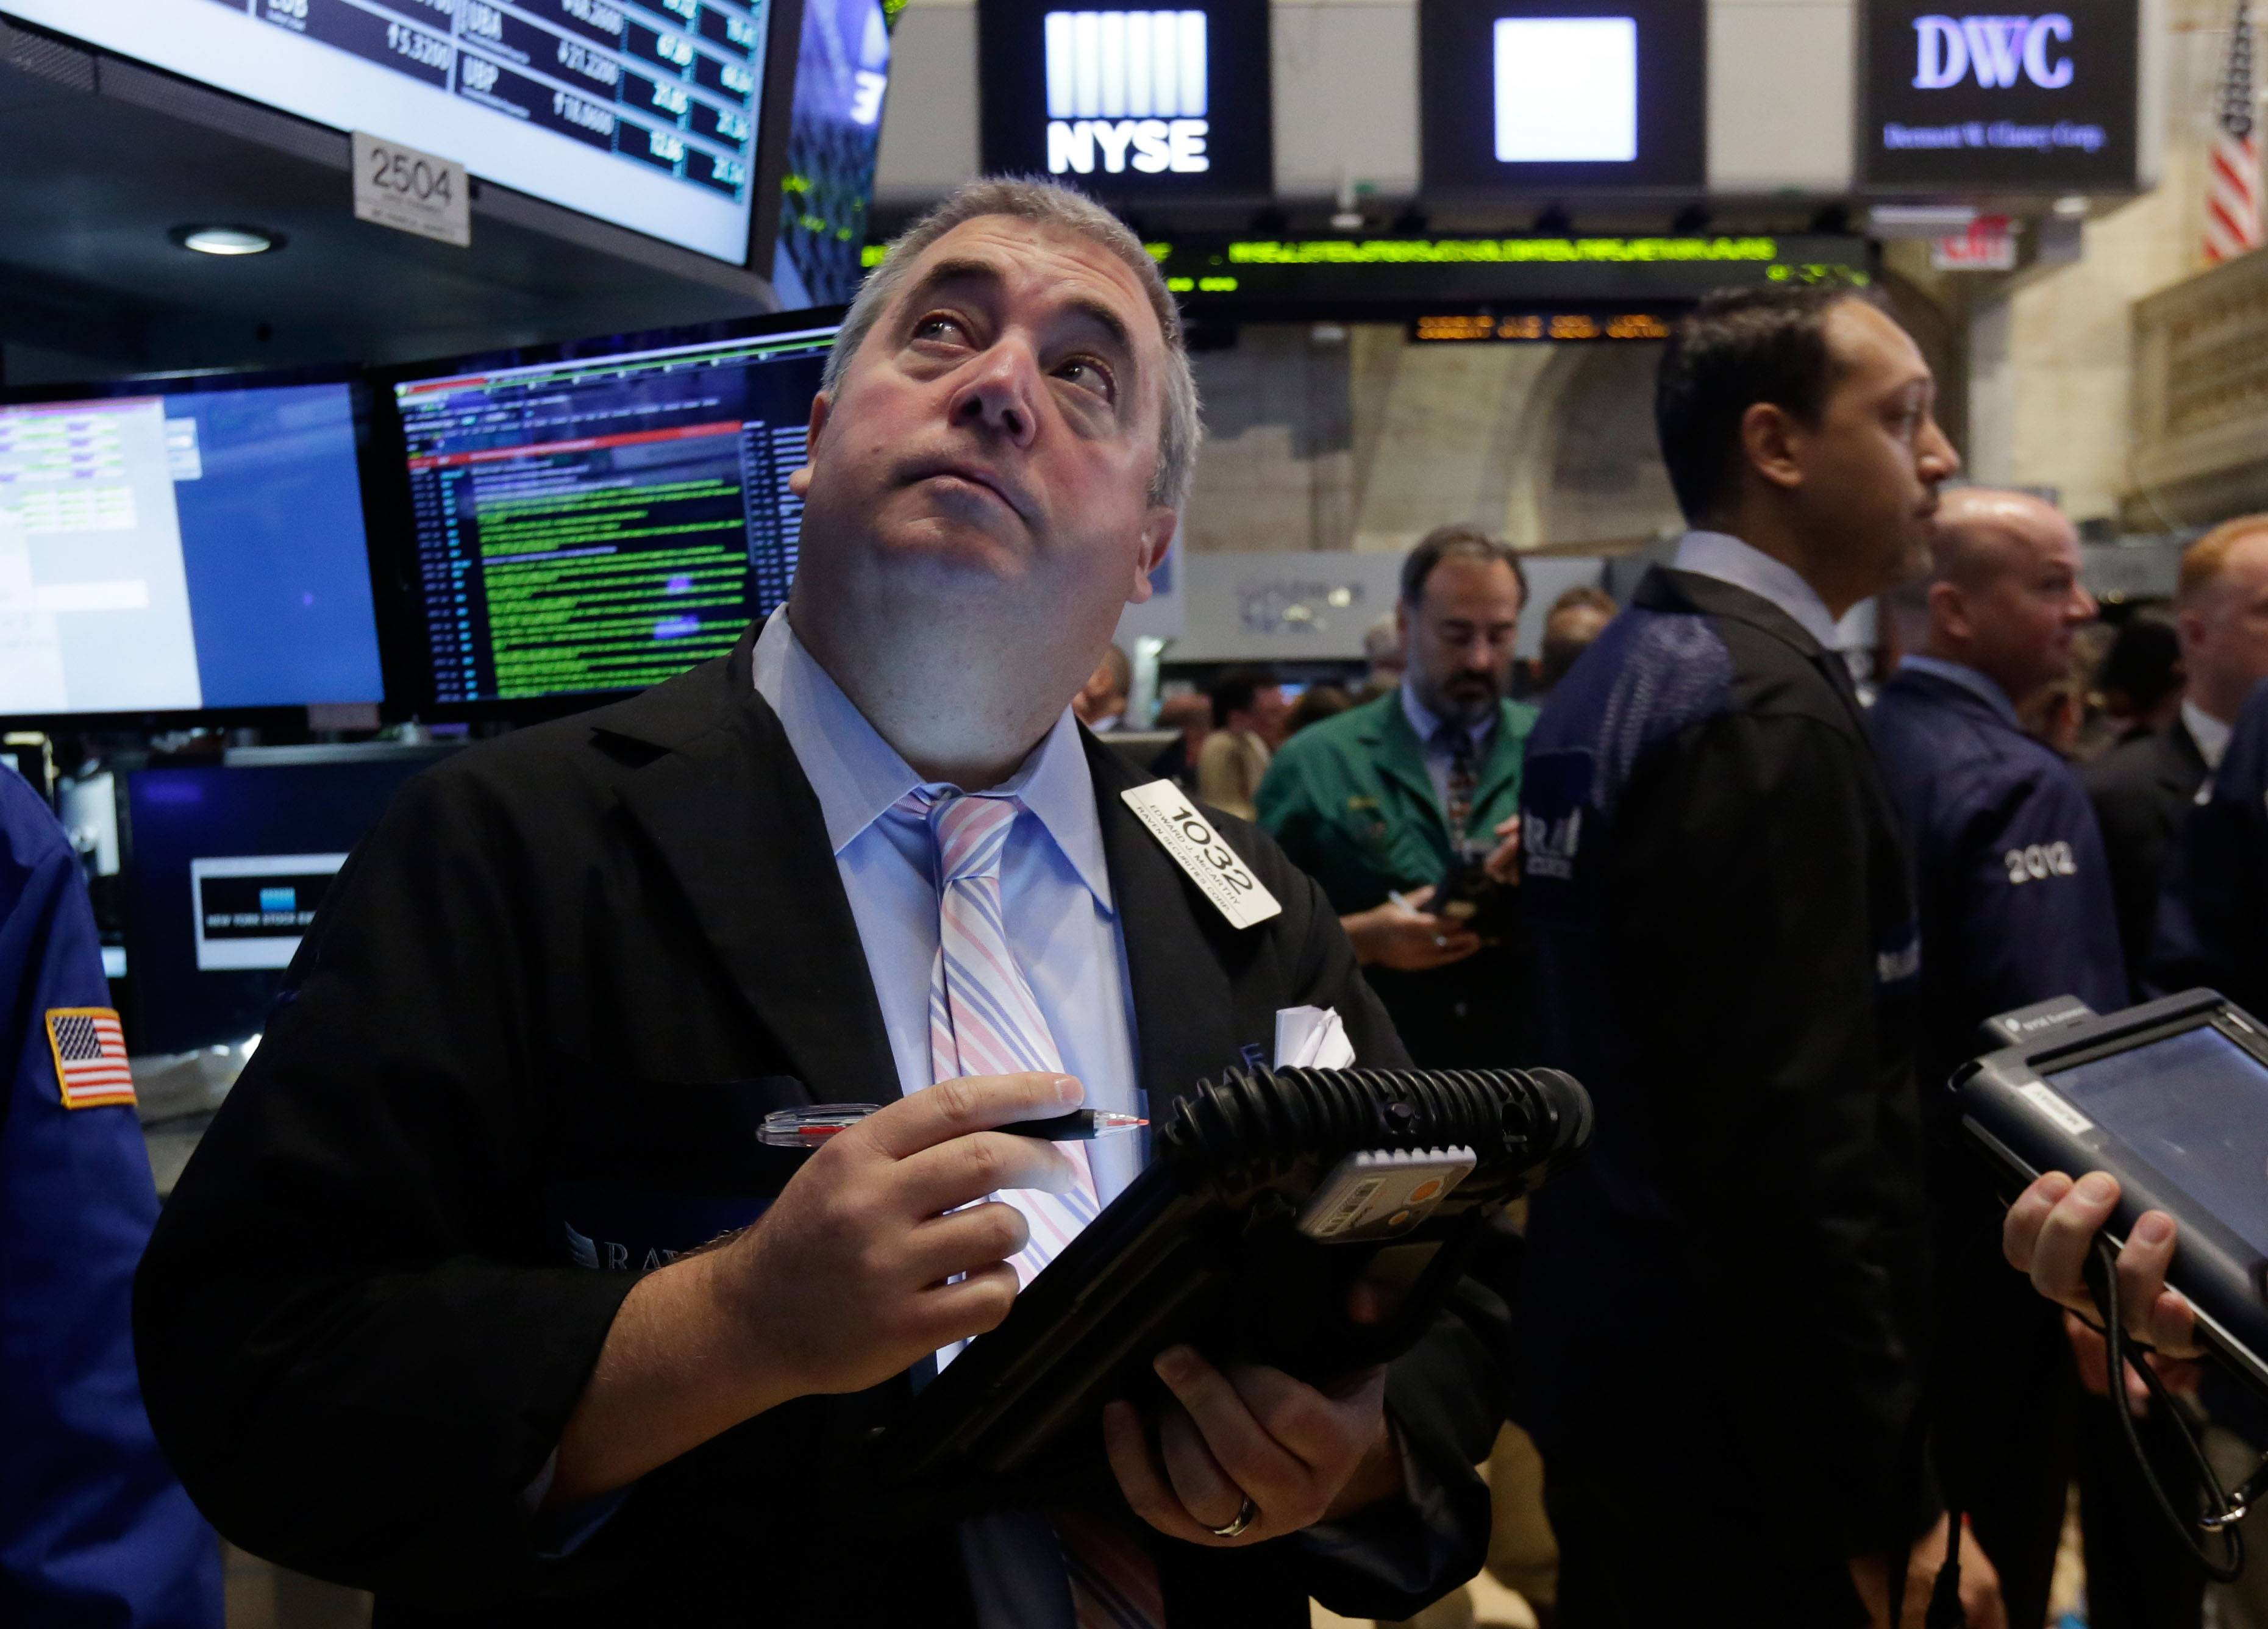 The stock market advanced for a fourth straight day Thursday, pushing the Standard & Poor's 500 index to a record high. Investors were encouraged by news that the number of people seeking unemployment benefits remains at a multi-year low.